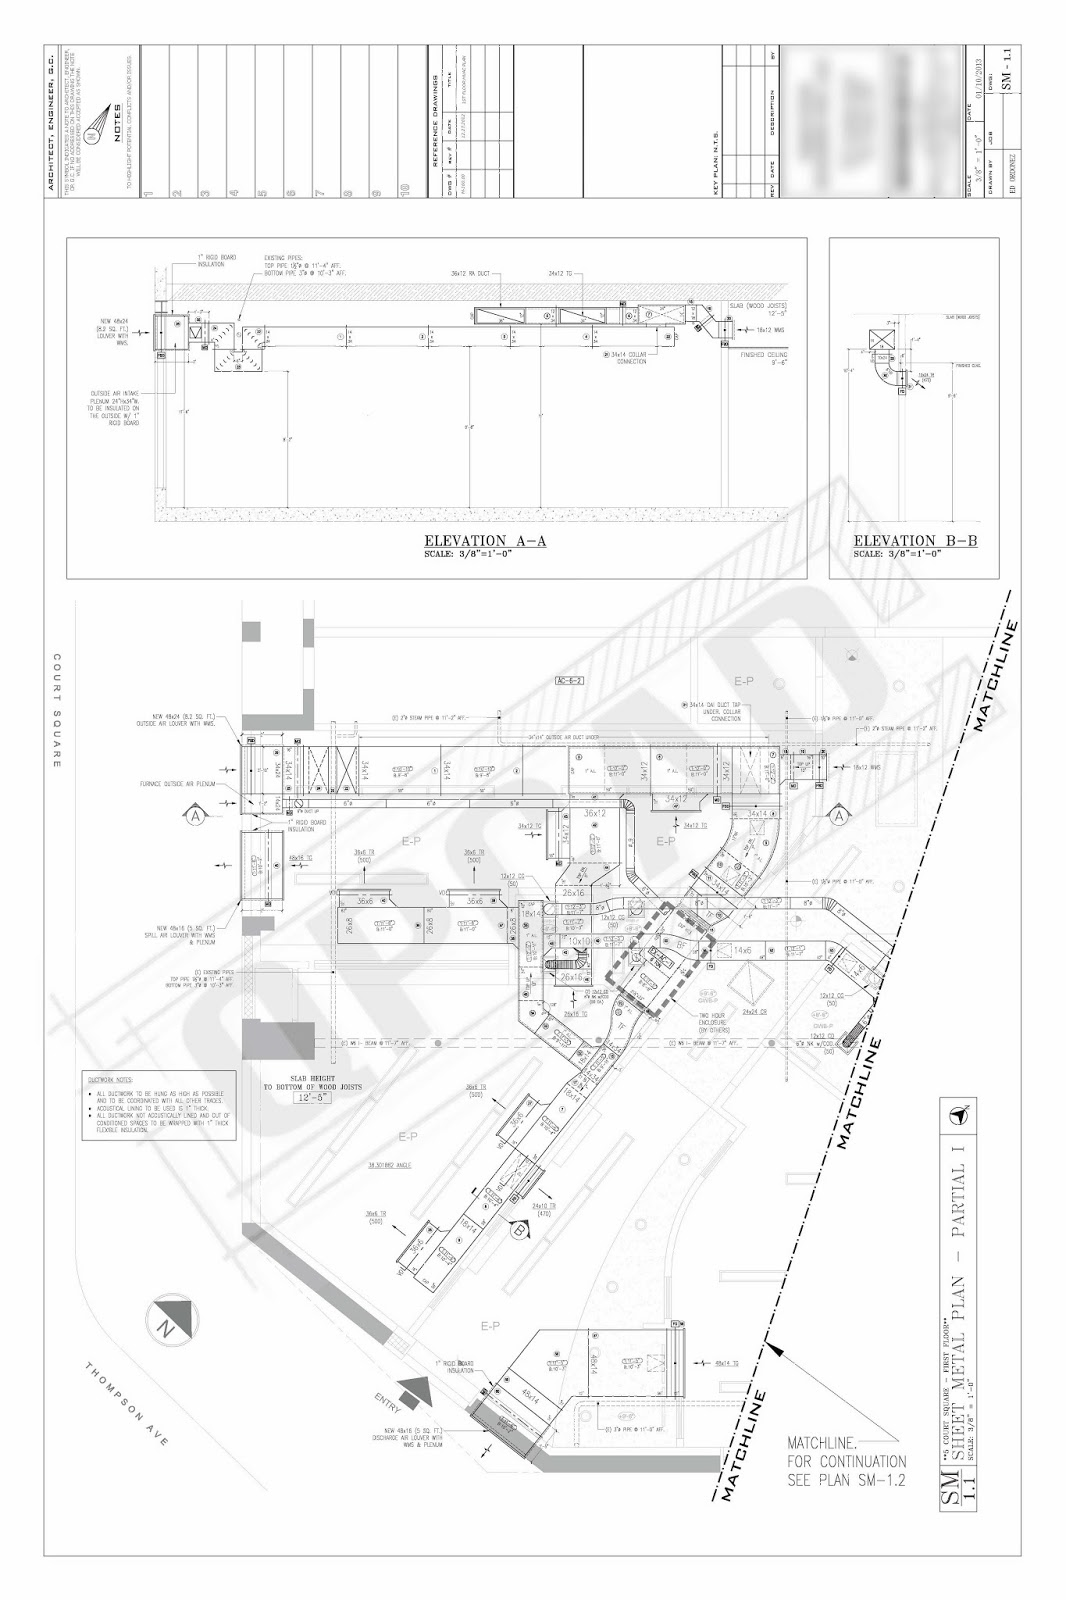 samples quickpro cadhvac shop drawing comments 7 [ 1066 x 1600 Pixel ]